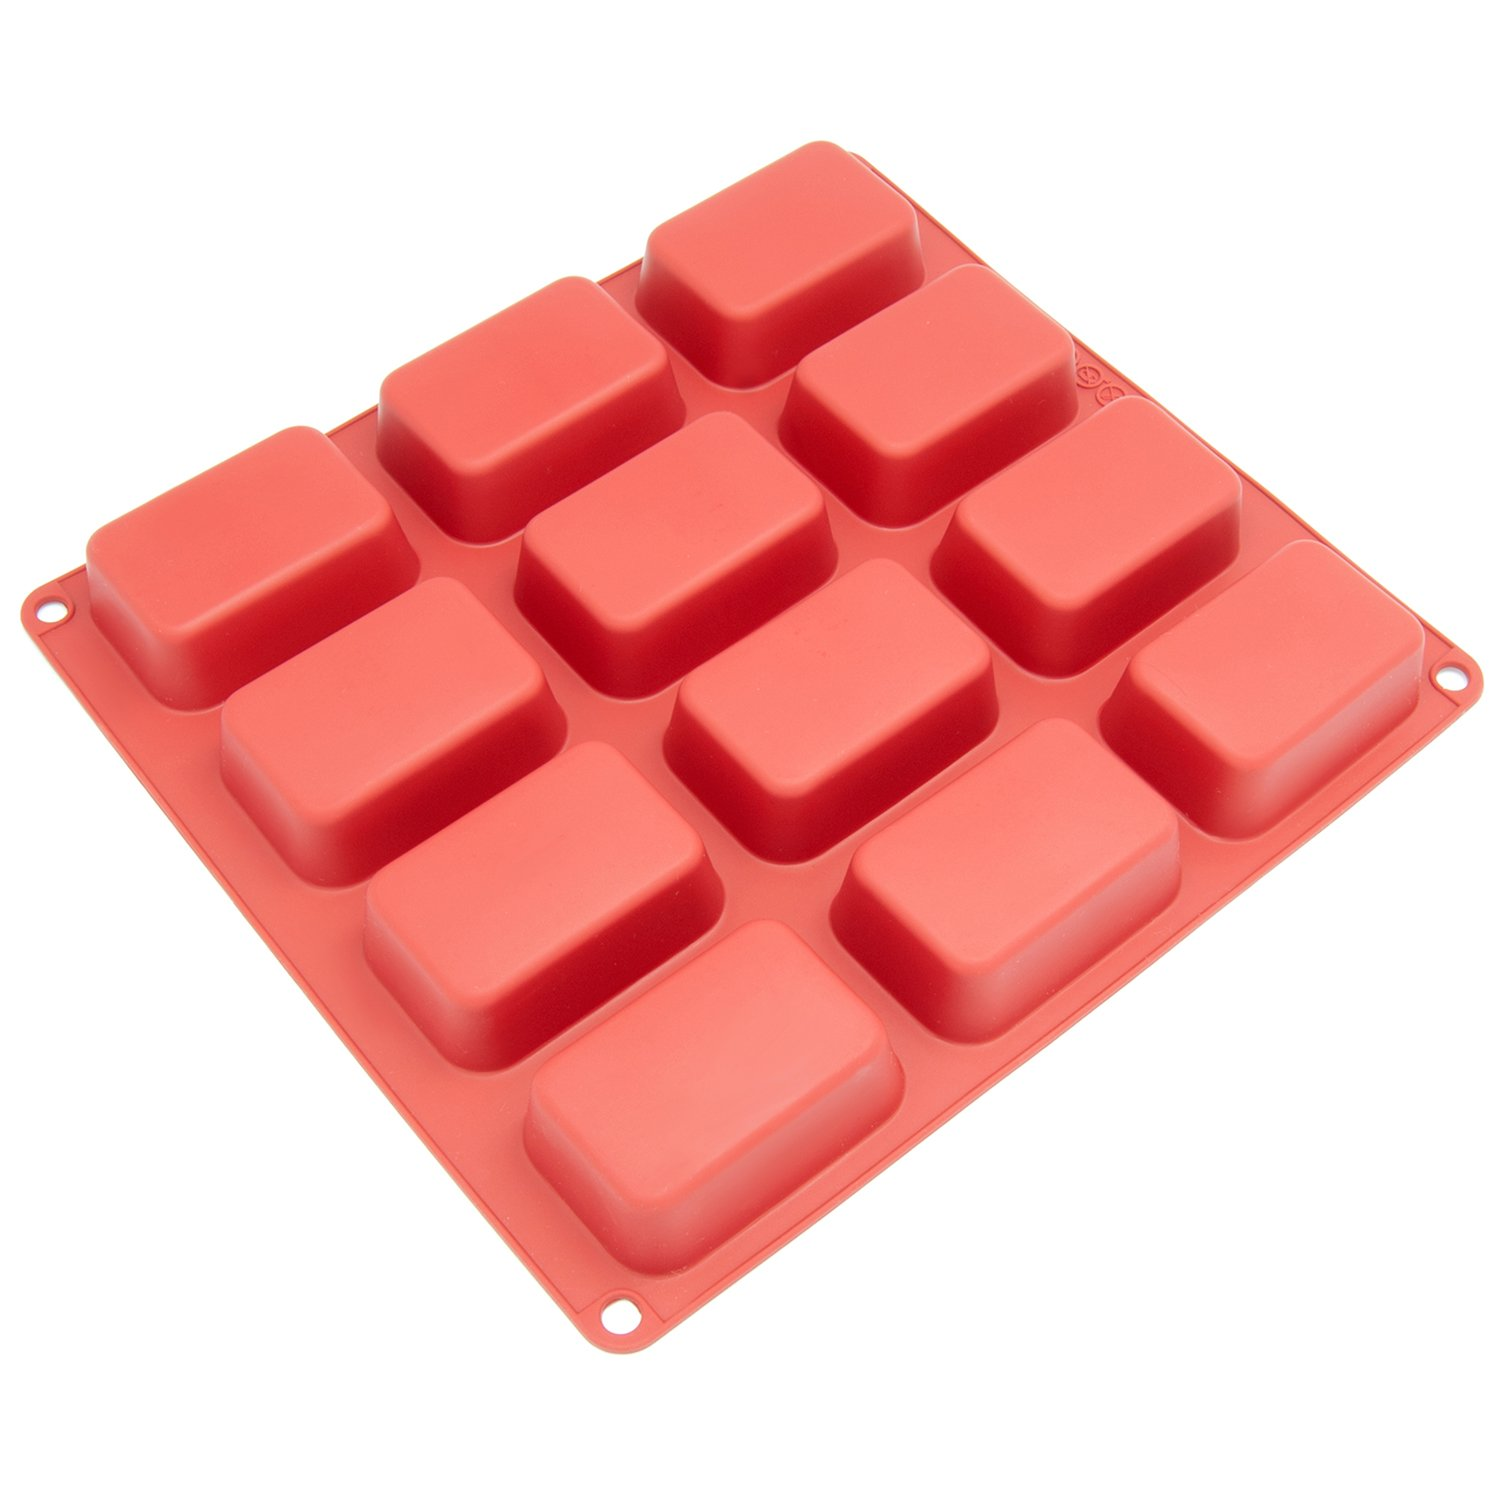 Freshware CB-105RD 12-Cavity Petite Silicone Mold for Soap and More